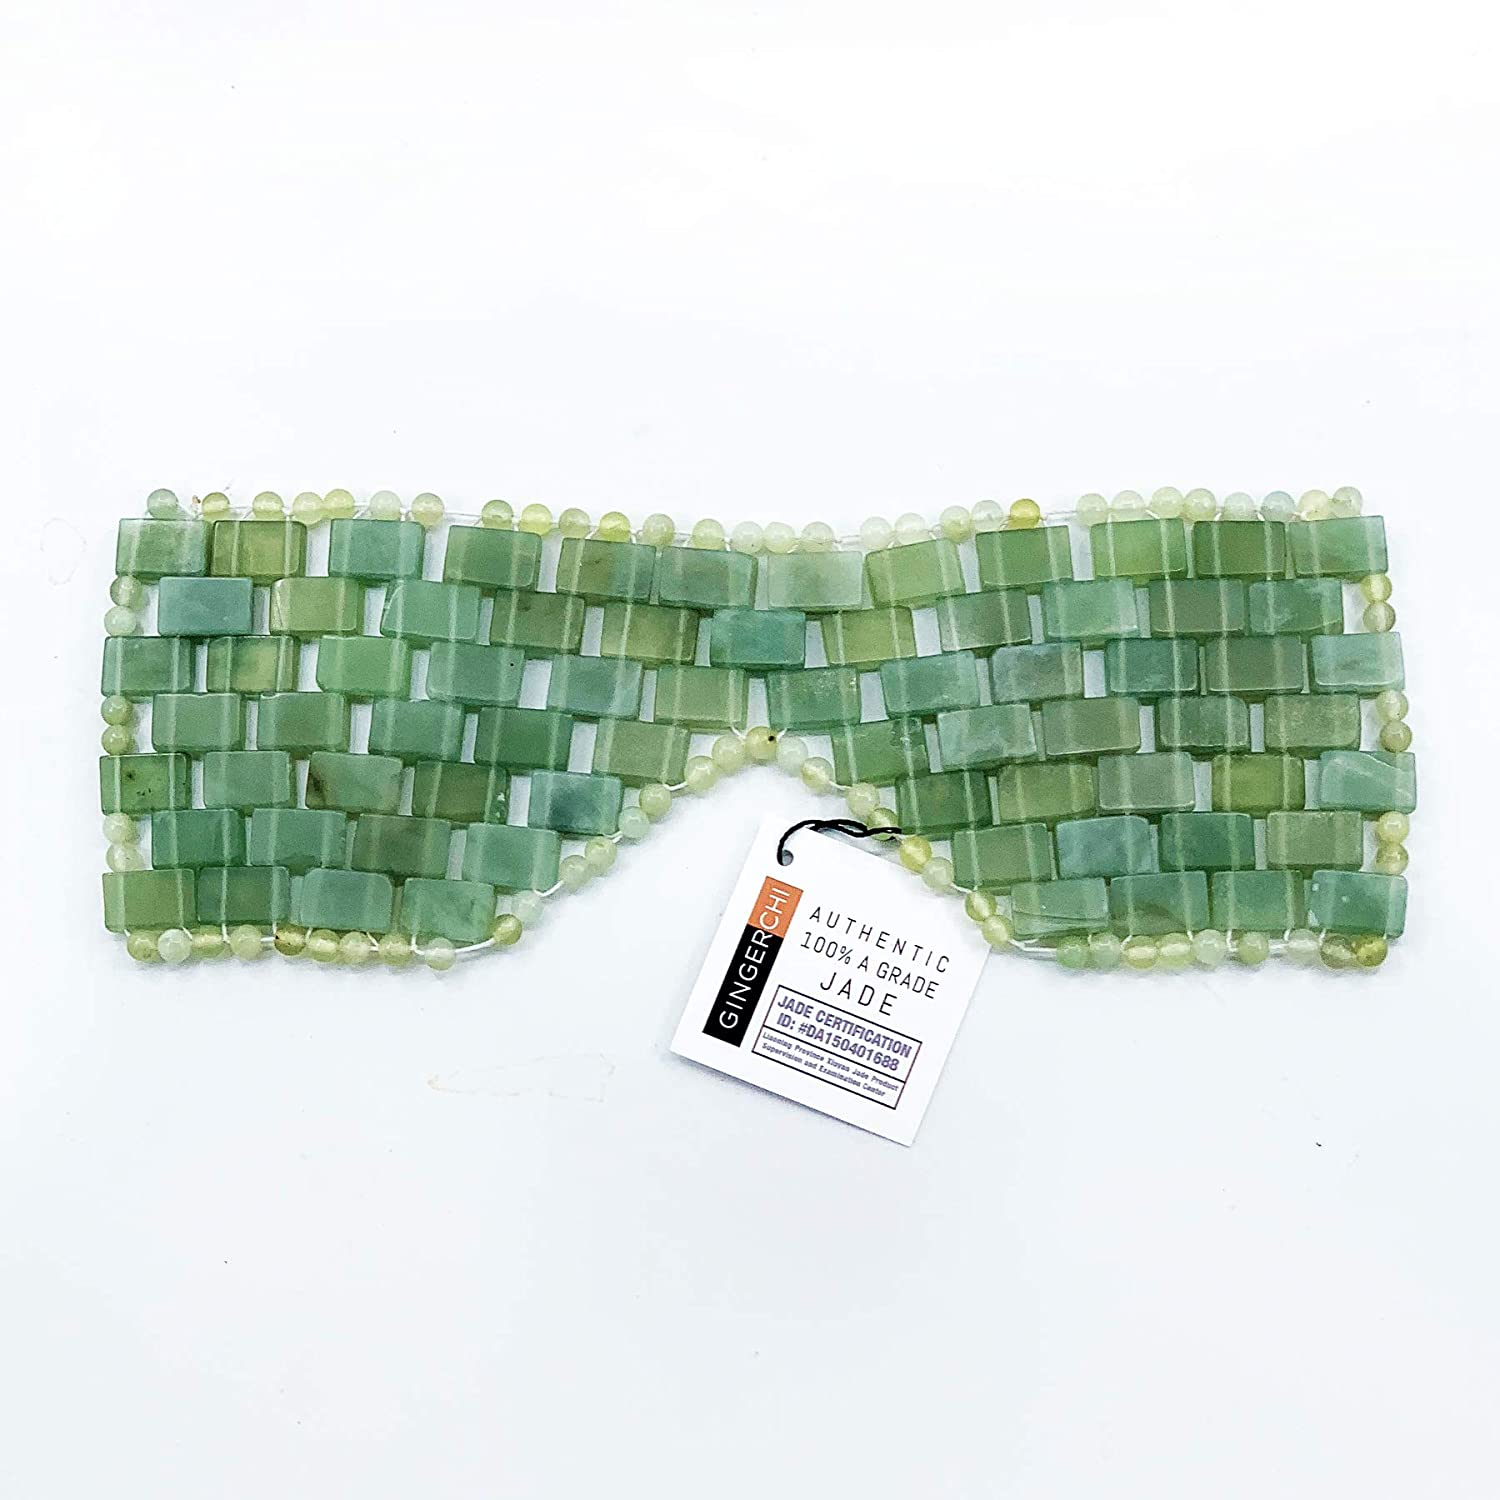 Natural 100% Jade Stones Anti-Aging Facial Sleeping Eye Mask Hot or Cold Therapy Blindfold for Puffy Eyes, Dark Circles Headache, Migraine Relief and Soothe Eye Fatigue Beauty Skincare Massage Tool Remove wrinkles